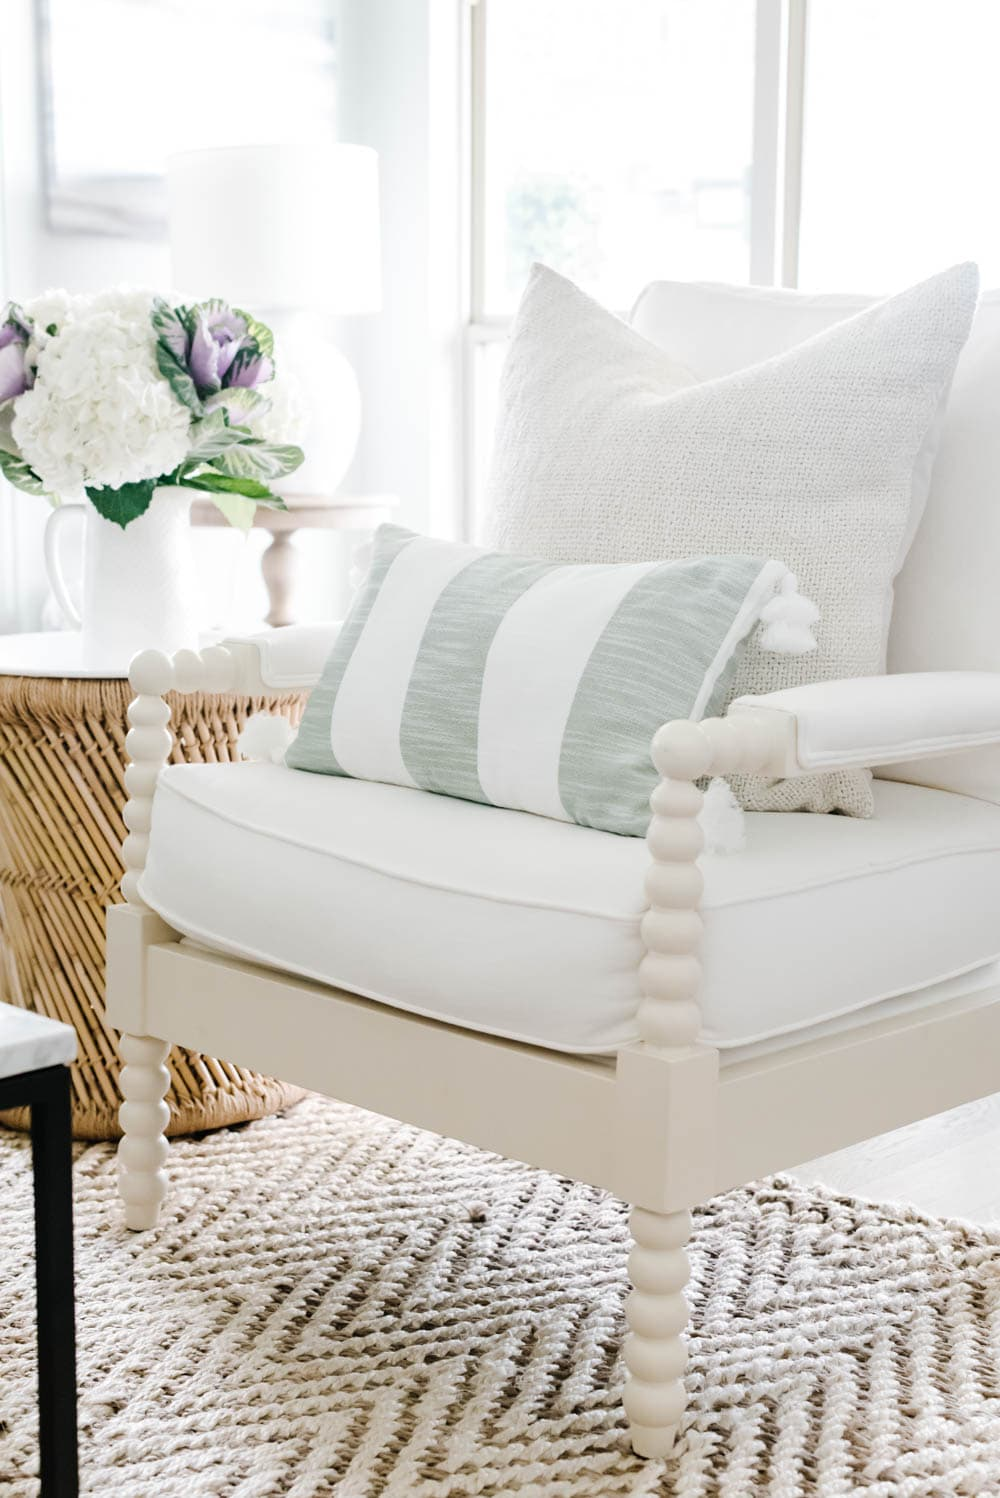 Tips to get a fresh curated look for summer effortlessly. #ABlissfulNest #summerhomedecor #summerstyle